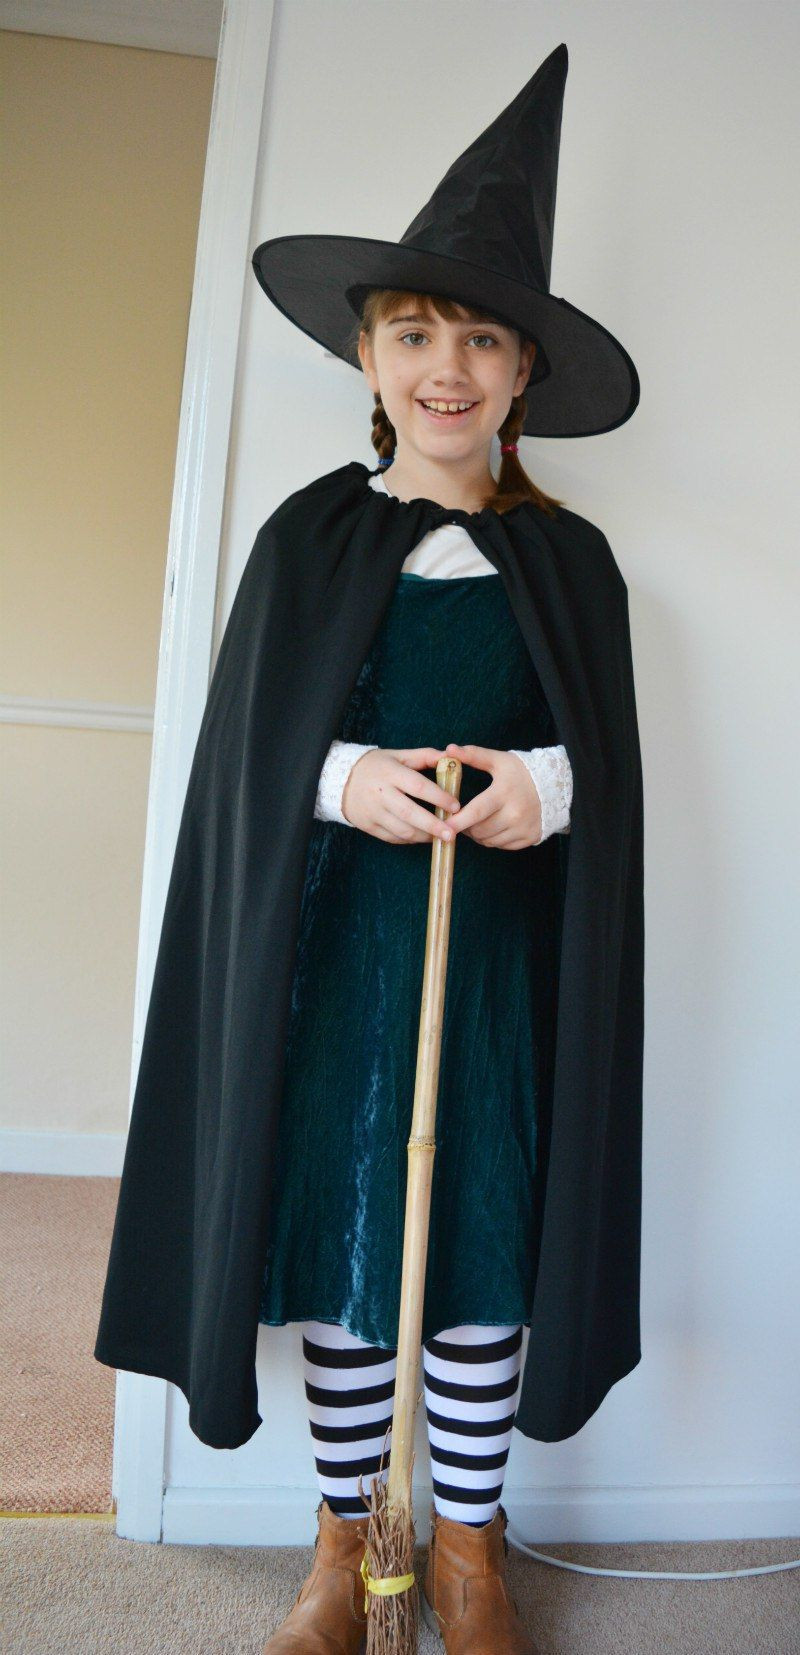 Best ideas about DIY Kids Witch Costume . Save or Pin Worst Witch Costume DIY Cape Now.